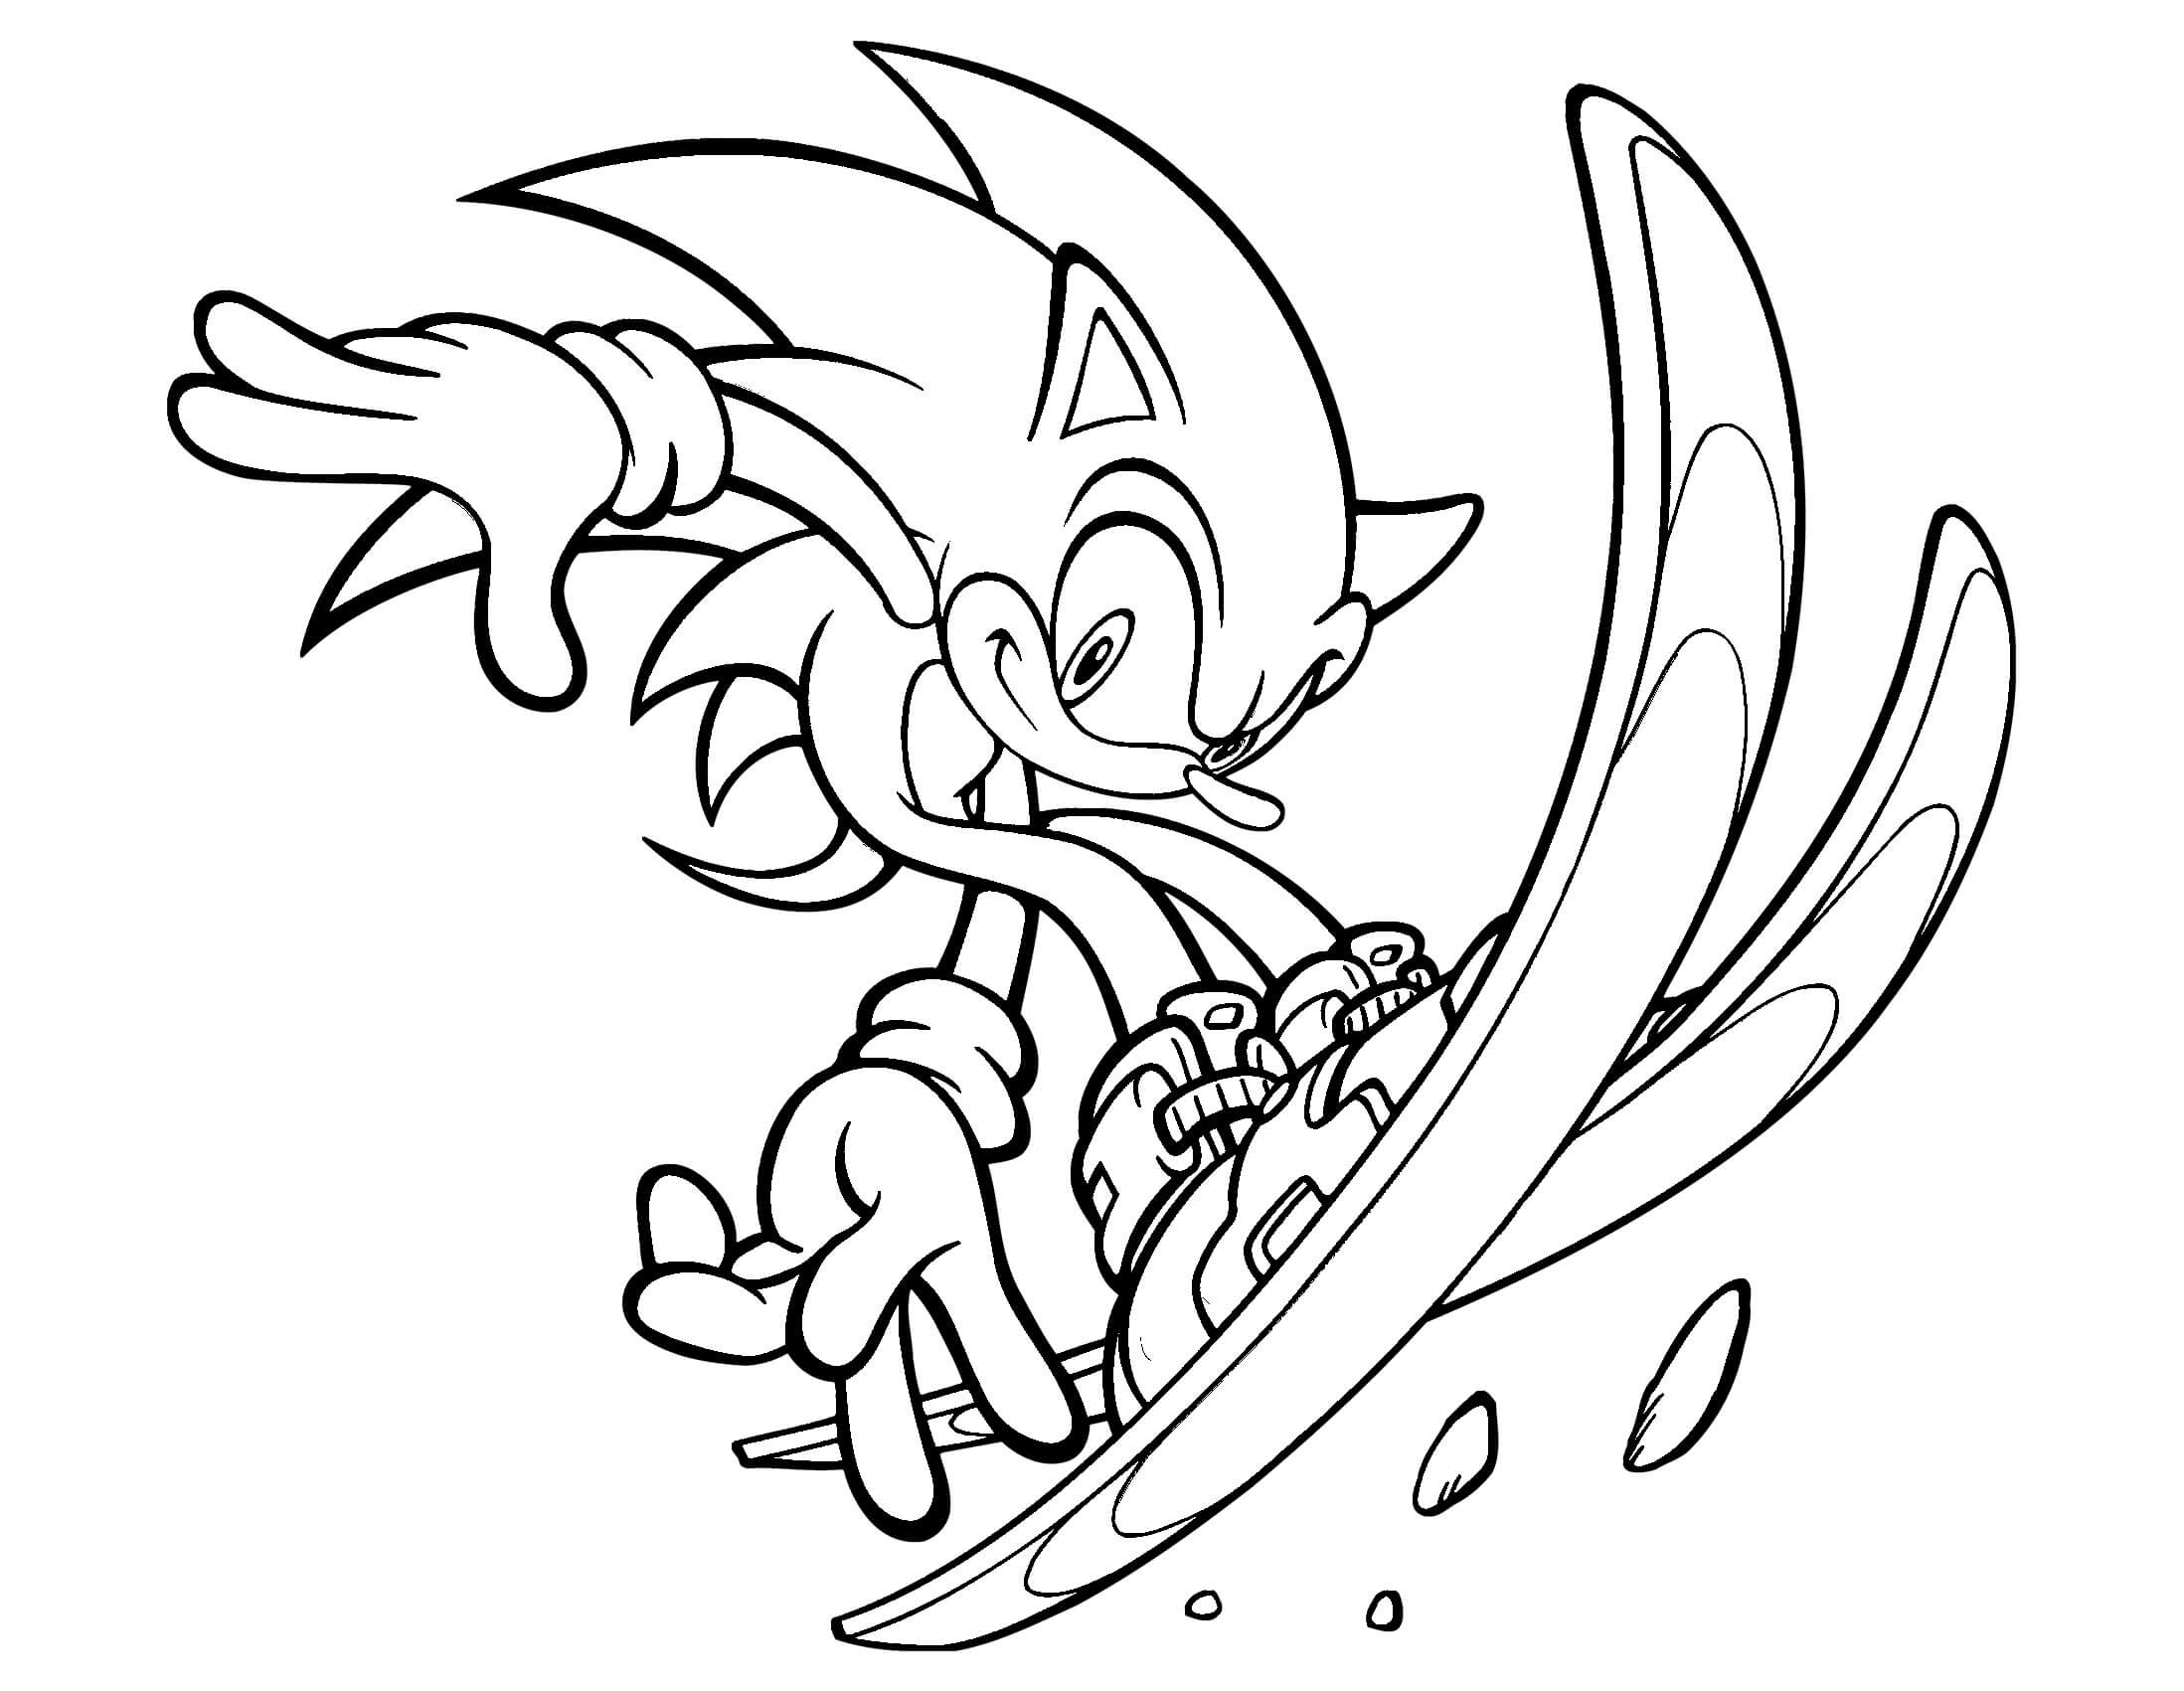 Blade Coloring Pages at GetColorings.com | Free printable ...